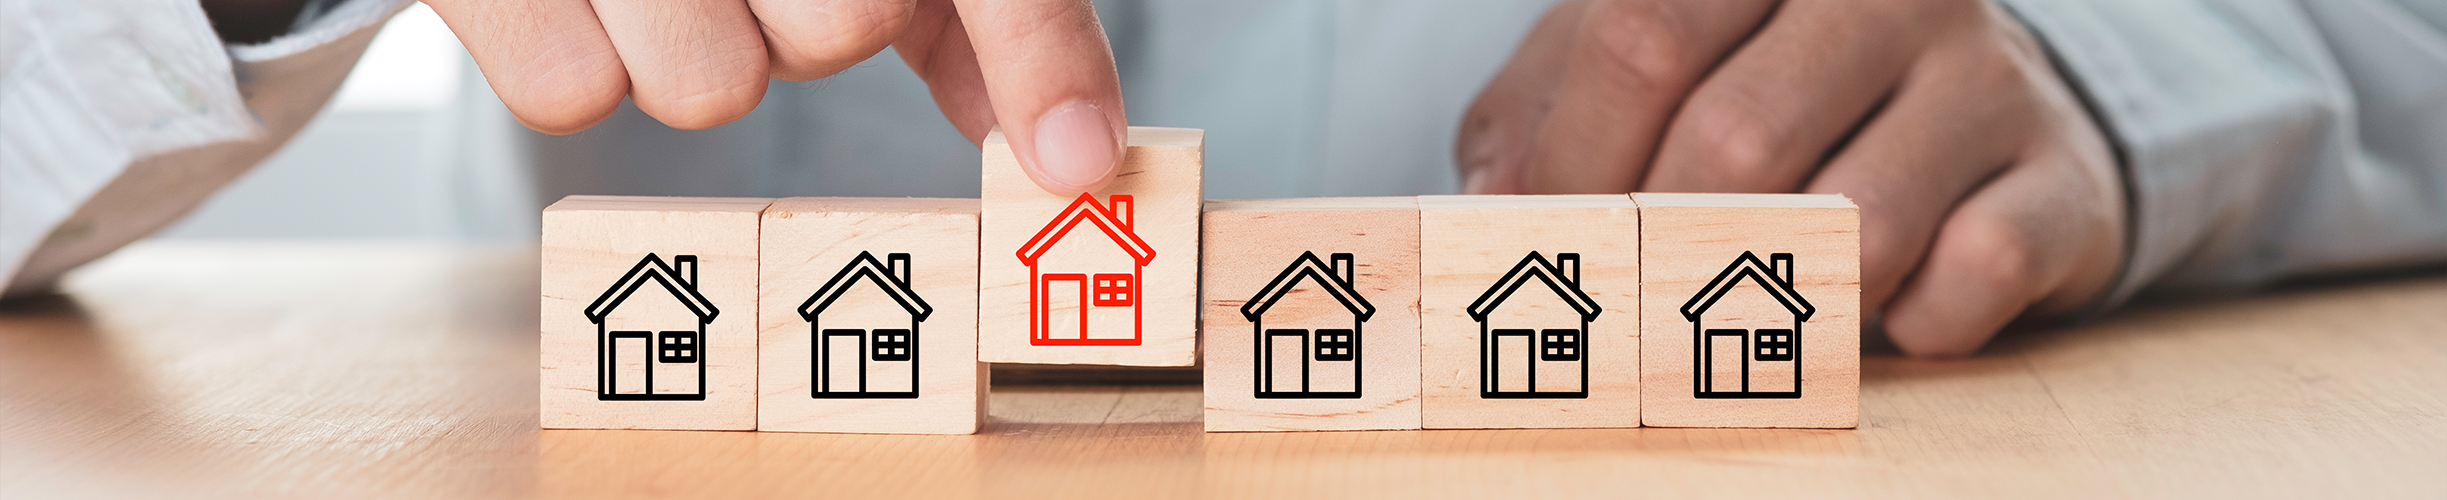 What-is-a-Homebuyers-Report-and-Why-Do-I-Need-One